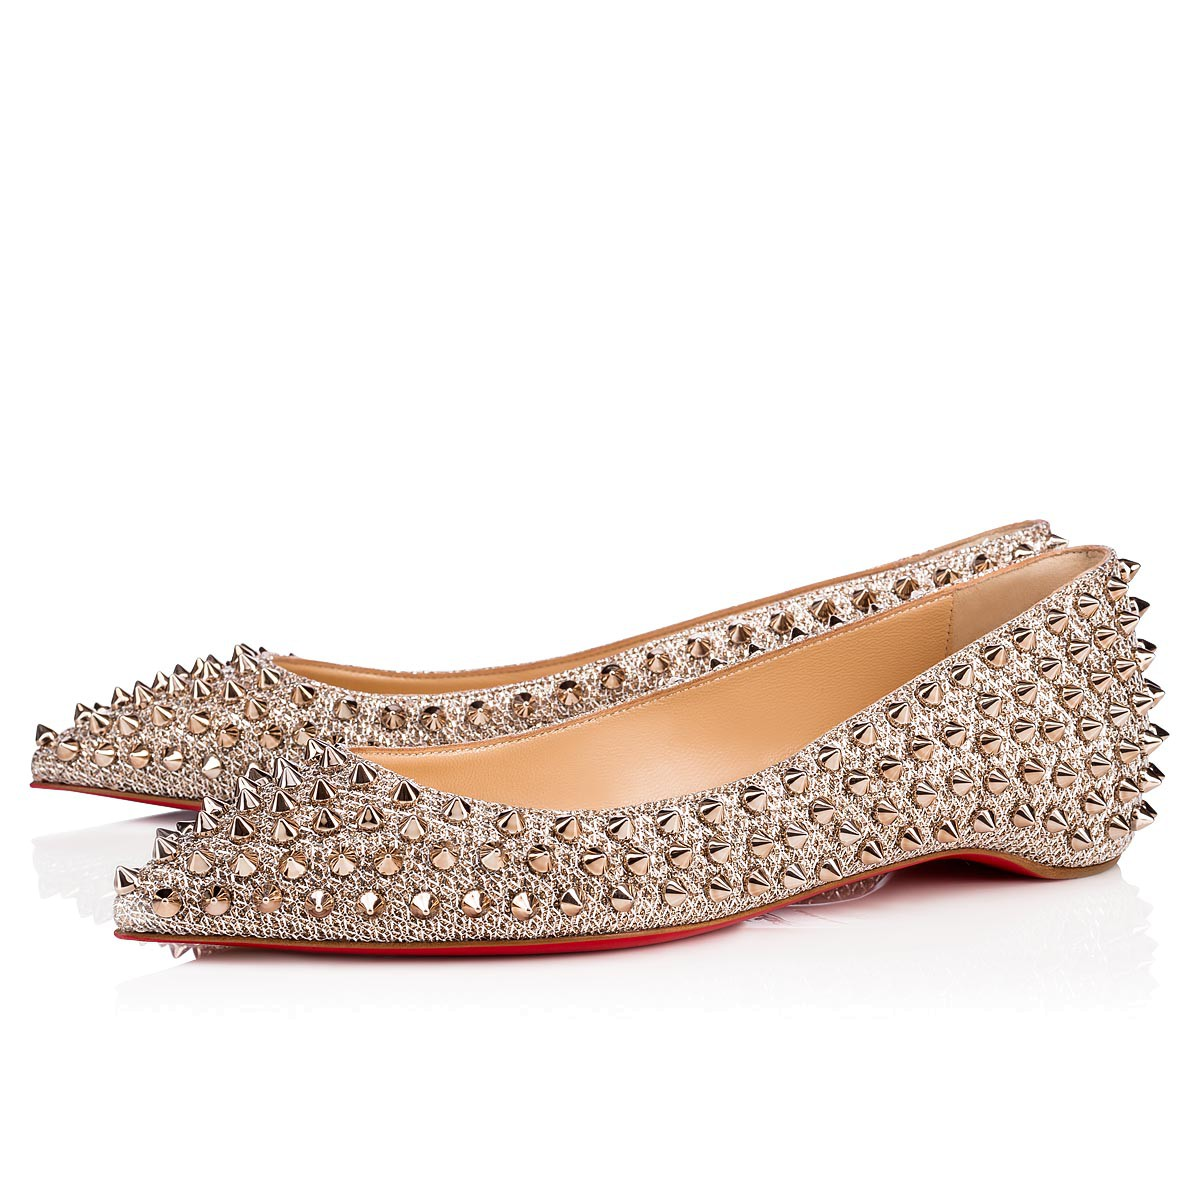 best service d8cc6 a3e8e FOLLIES SPIKES COLOMBE/COLOMBE MET Glitter - Women Shoes - Christian  Louboutin